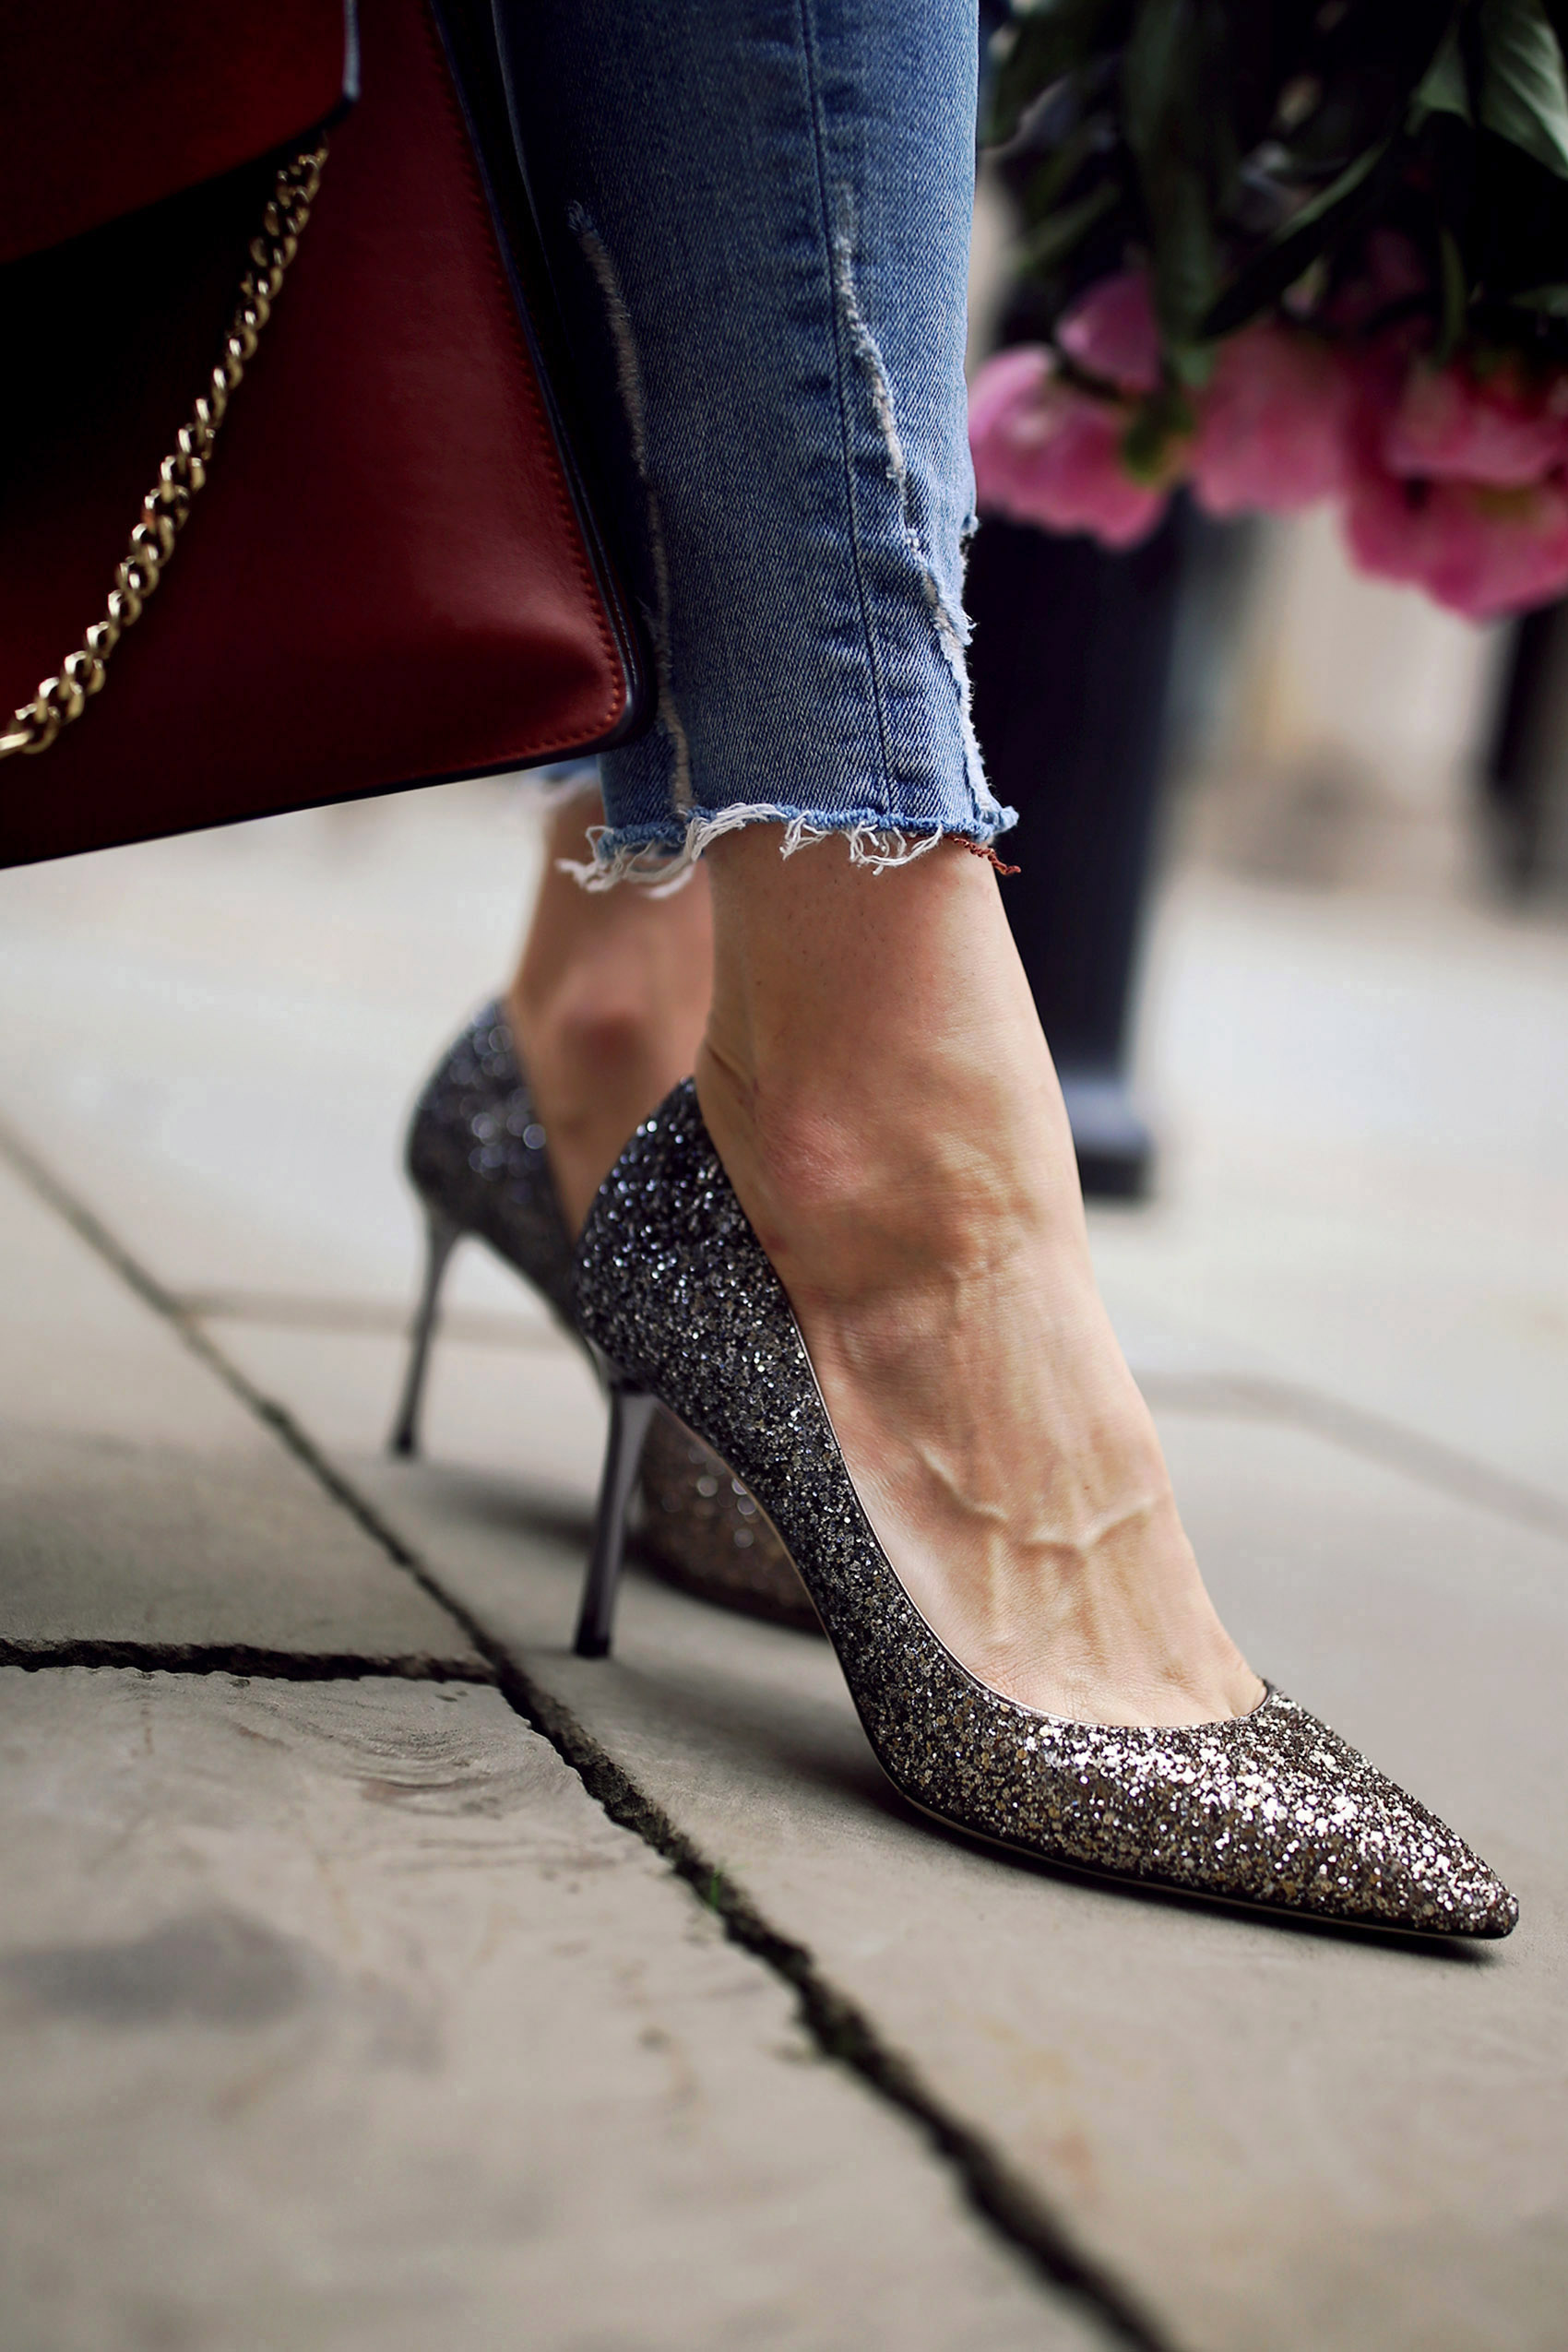 jimmy choo, mytheresa, downgraden, styling, jeans, denim, tunika, faye, heels, high heels, glitter, pumps